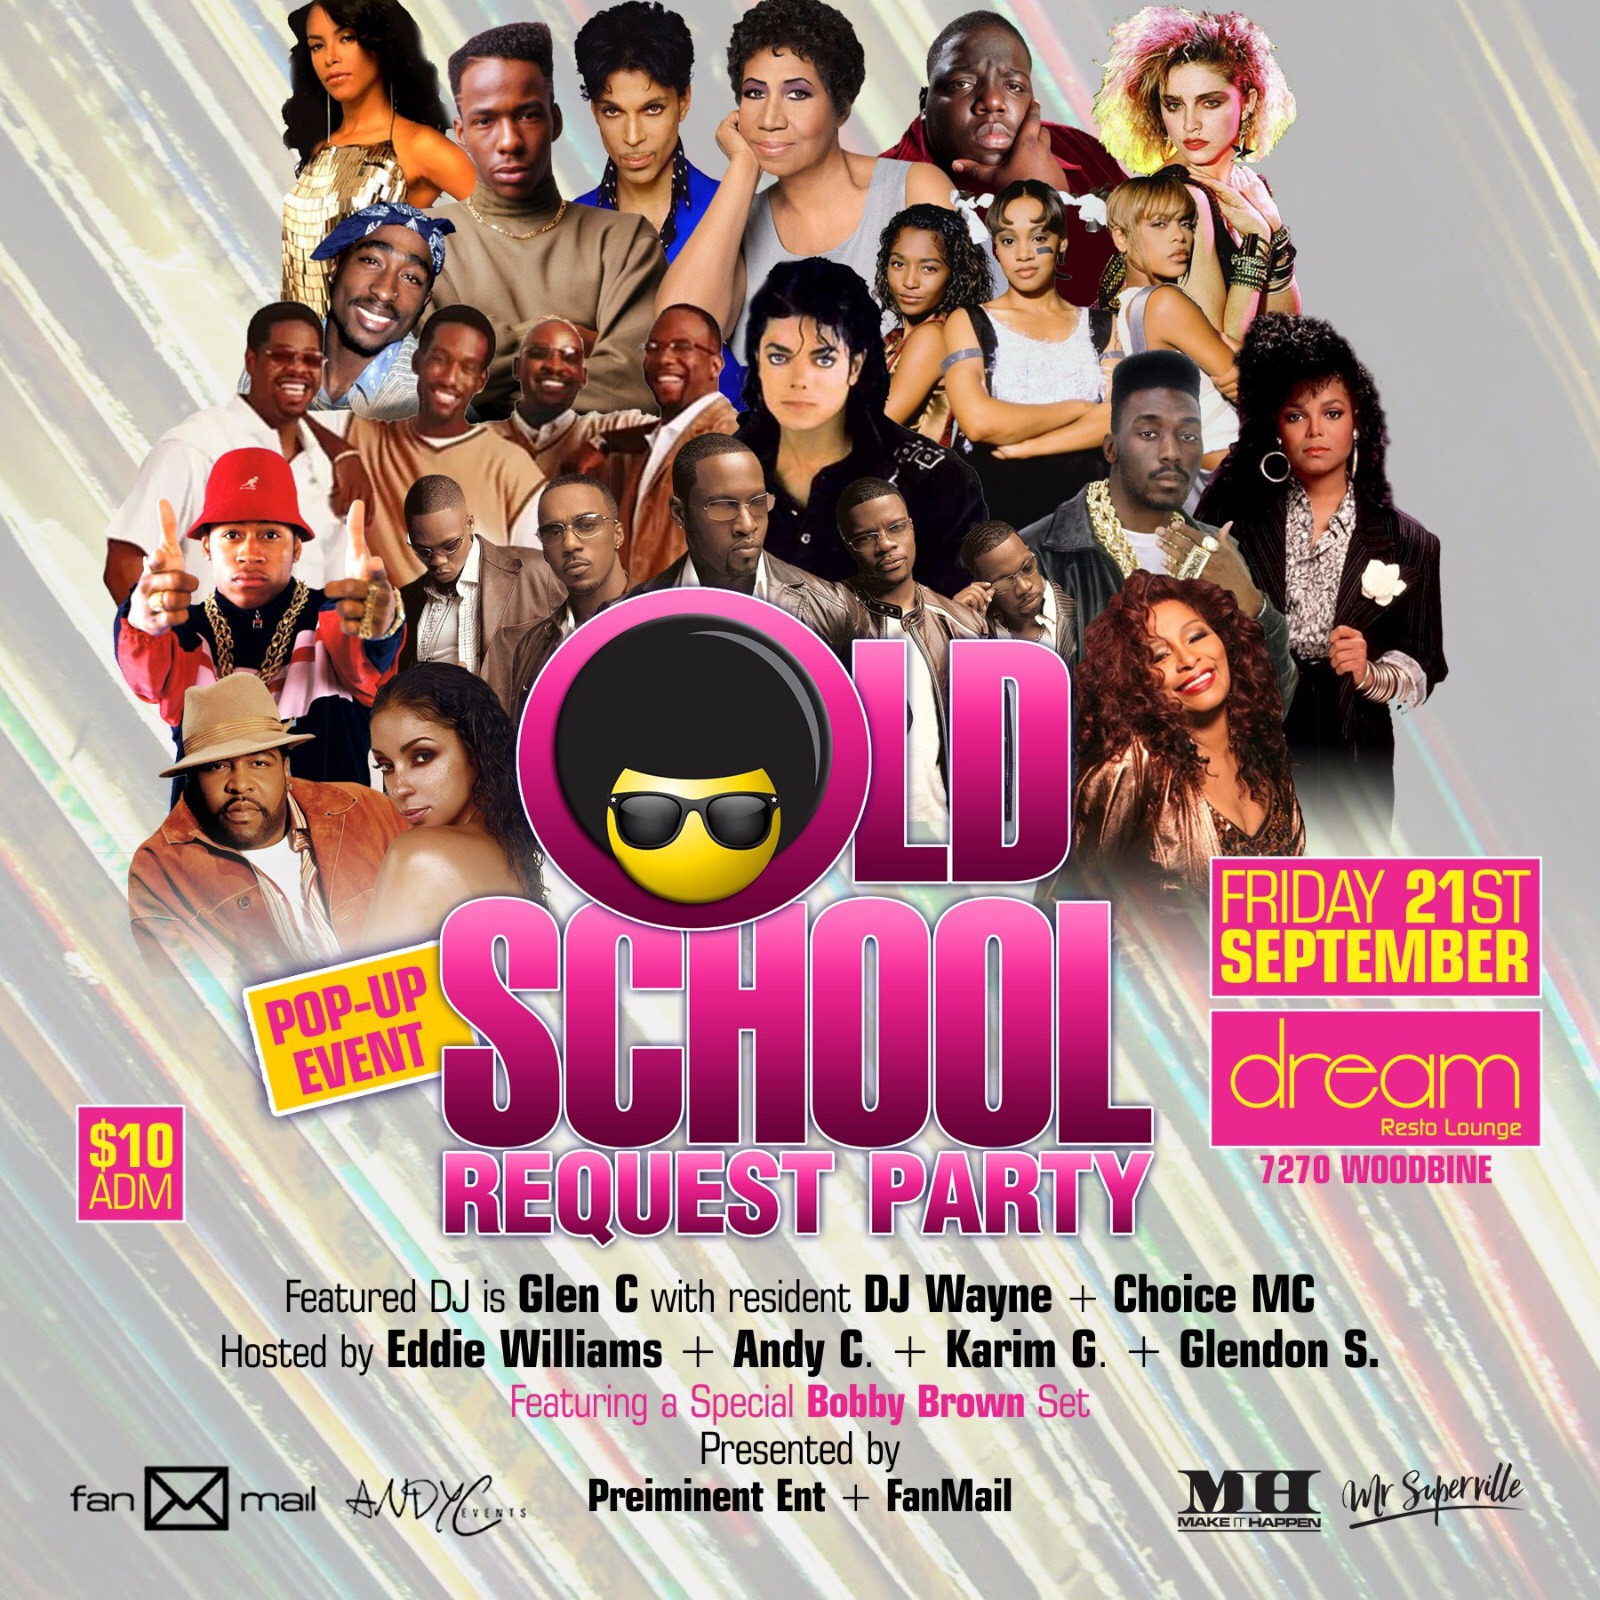 Old School Request Party Pop-Up